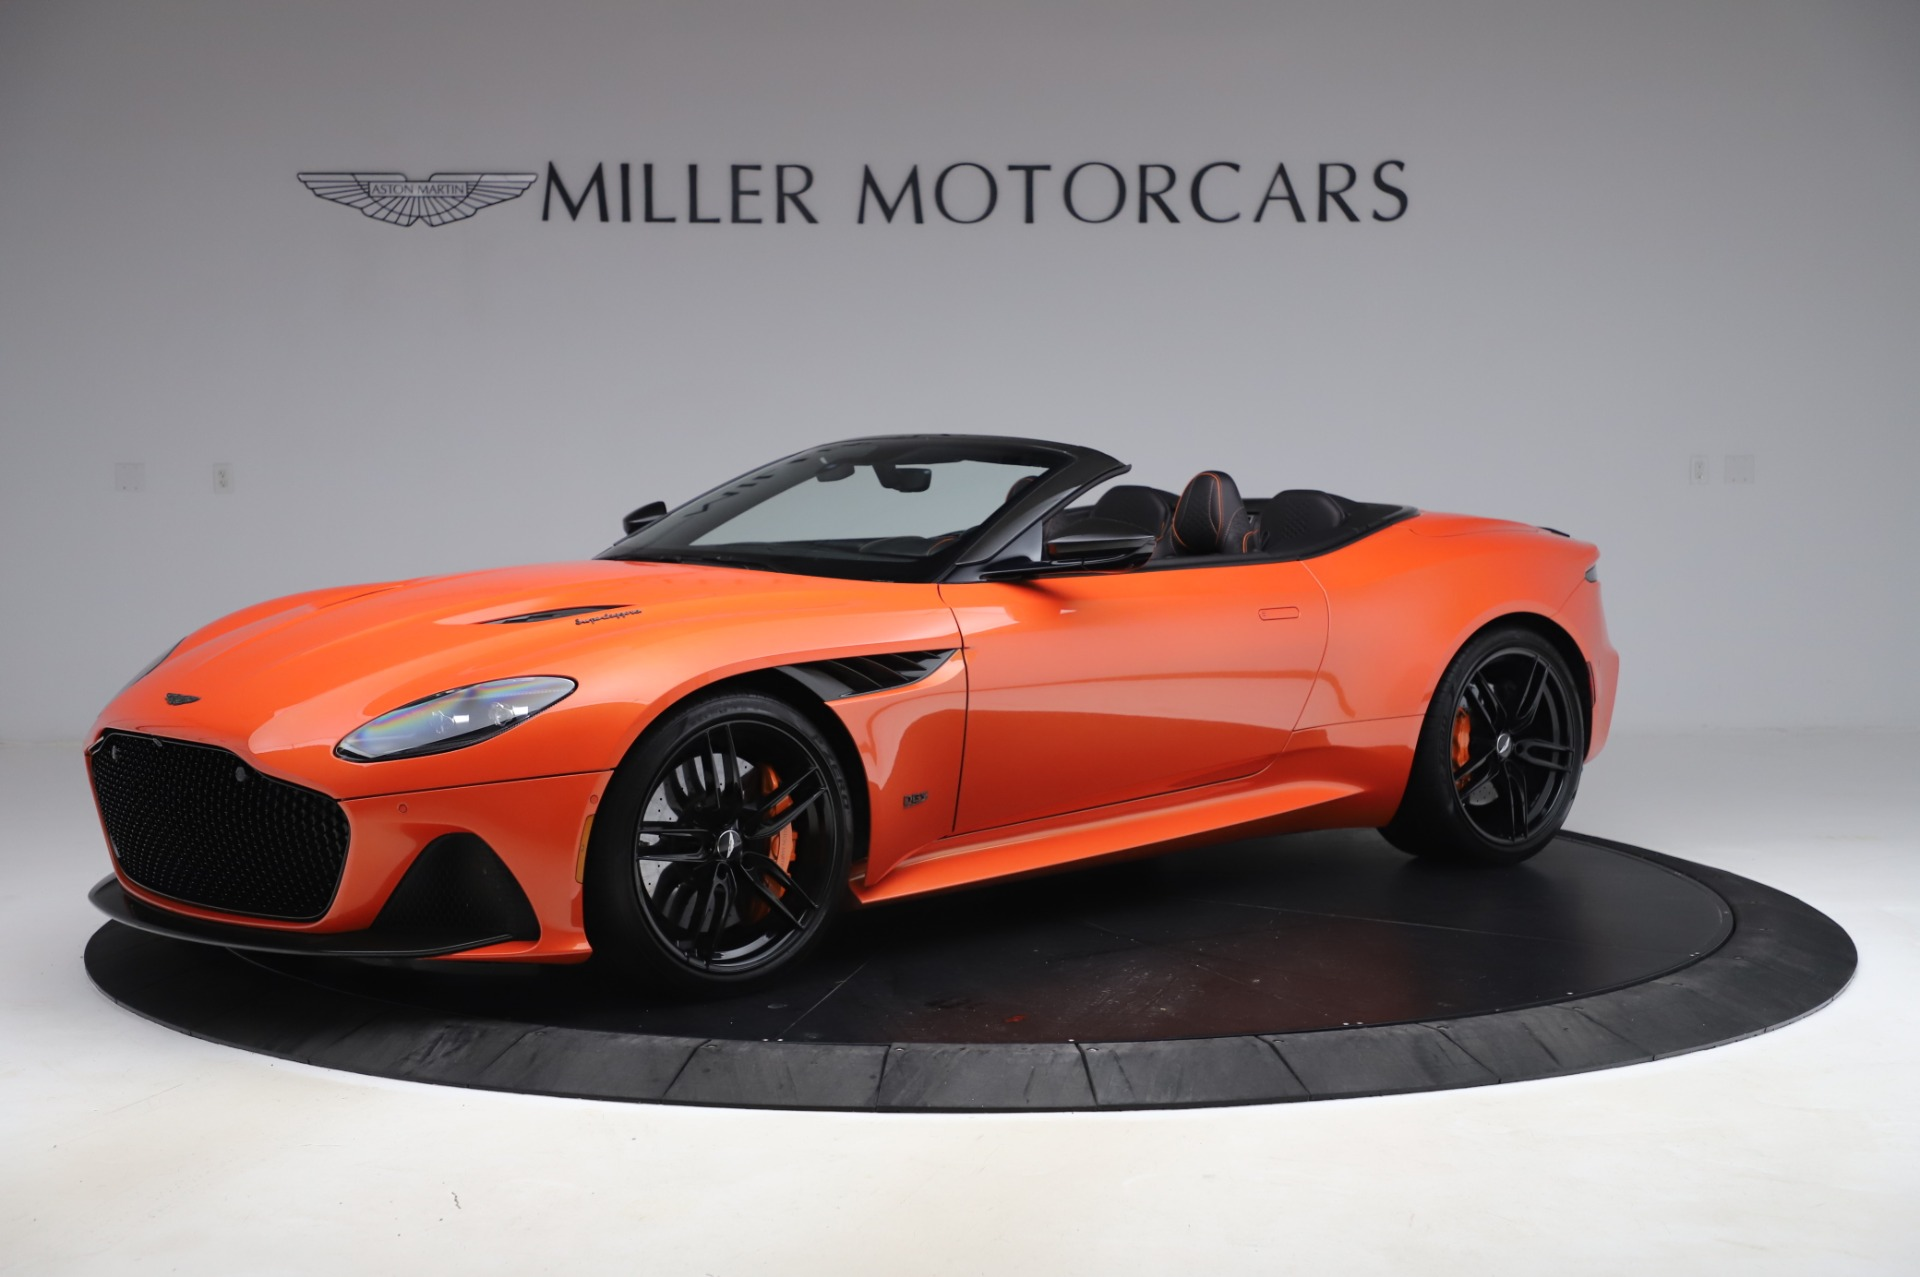 Used 2020 Aston Martin DBS Superleggera for sale $339,900 at Pagani of Greenwich in Greenwich CT 06830 1